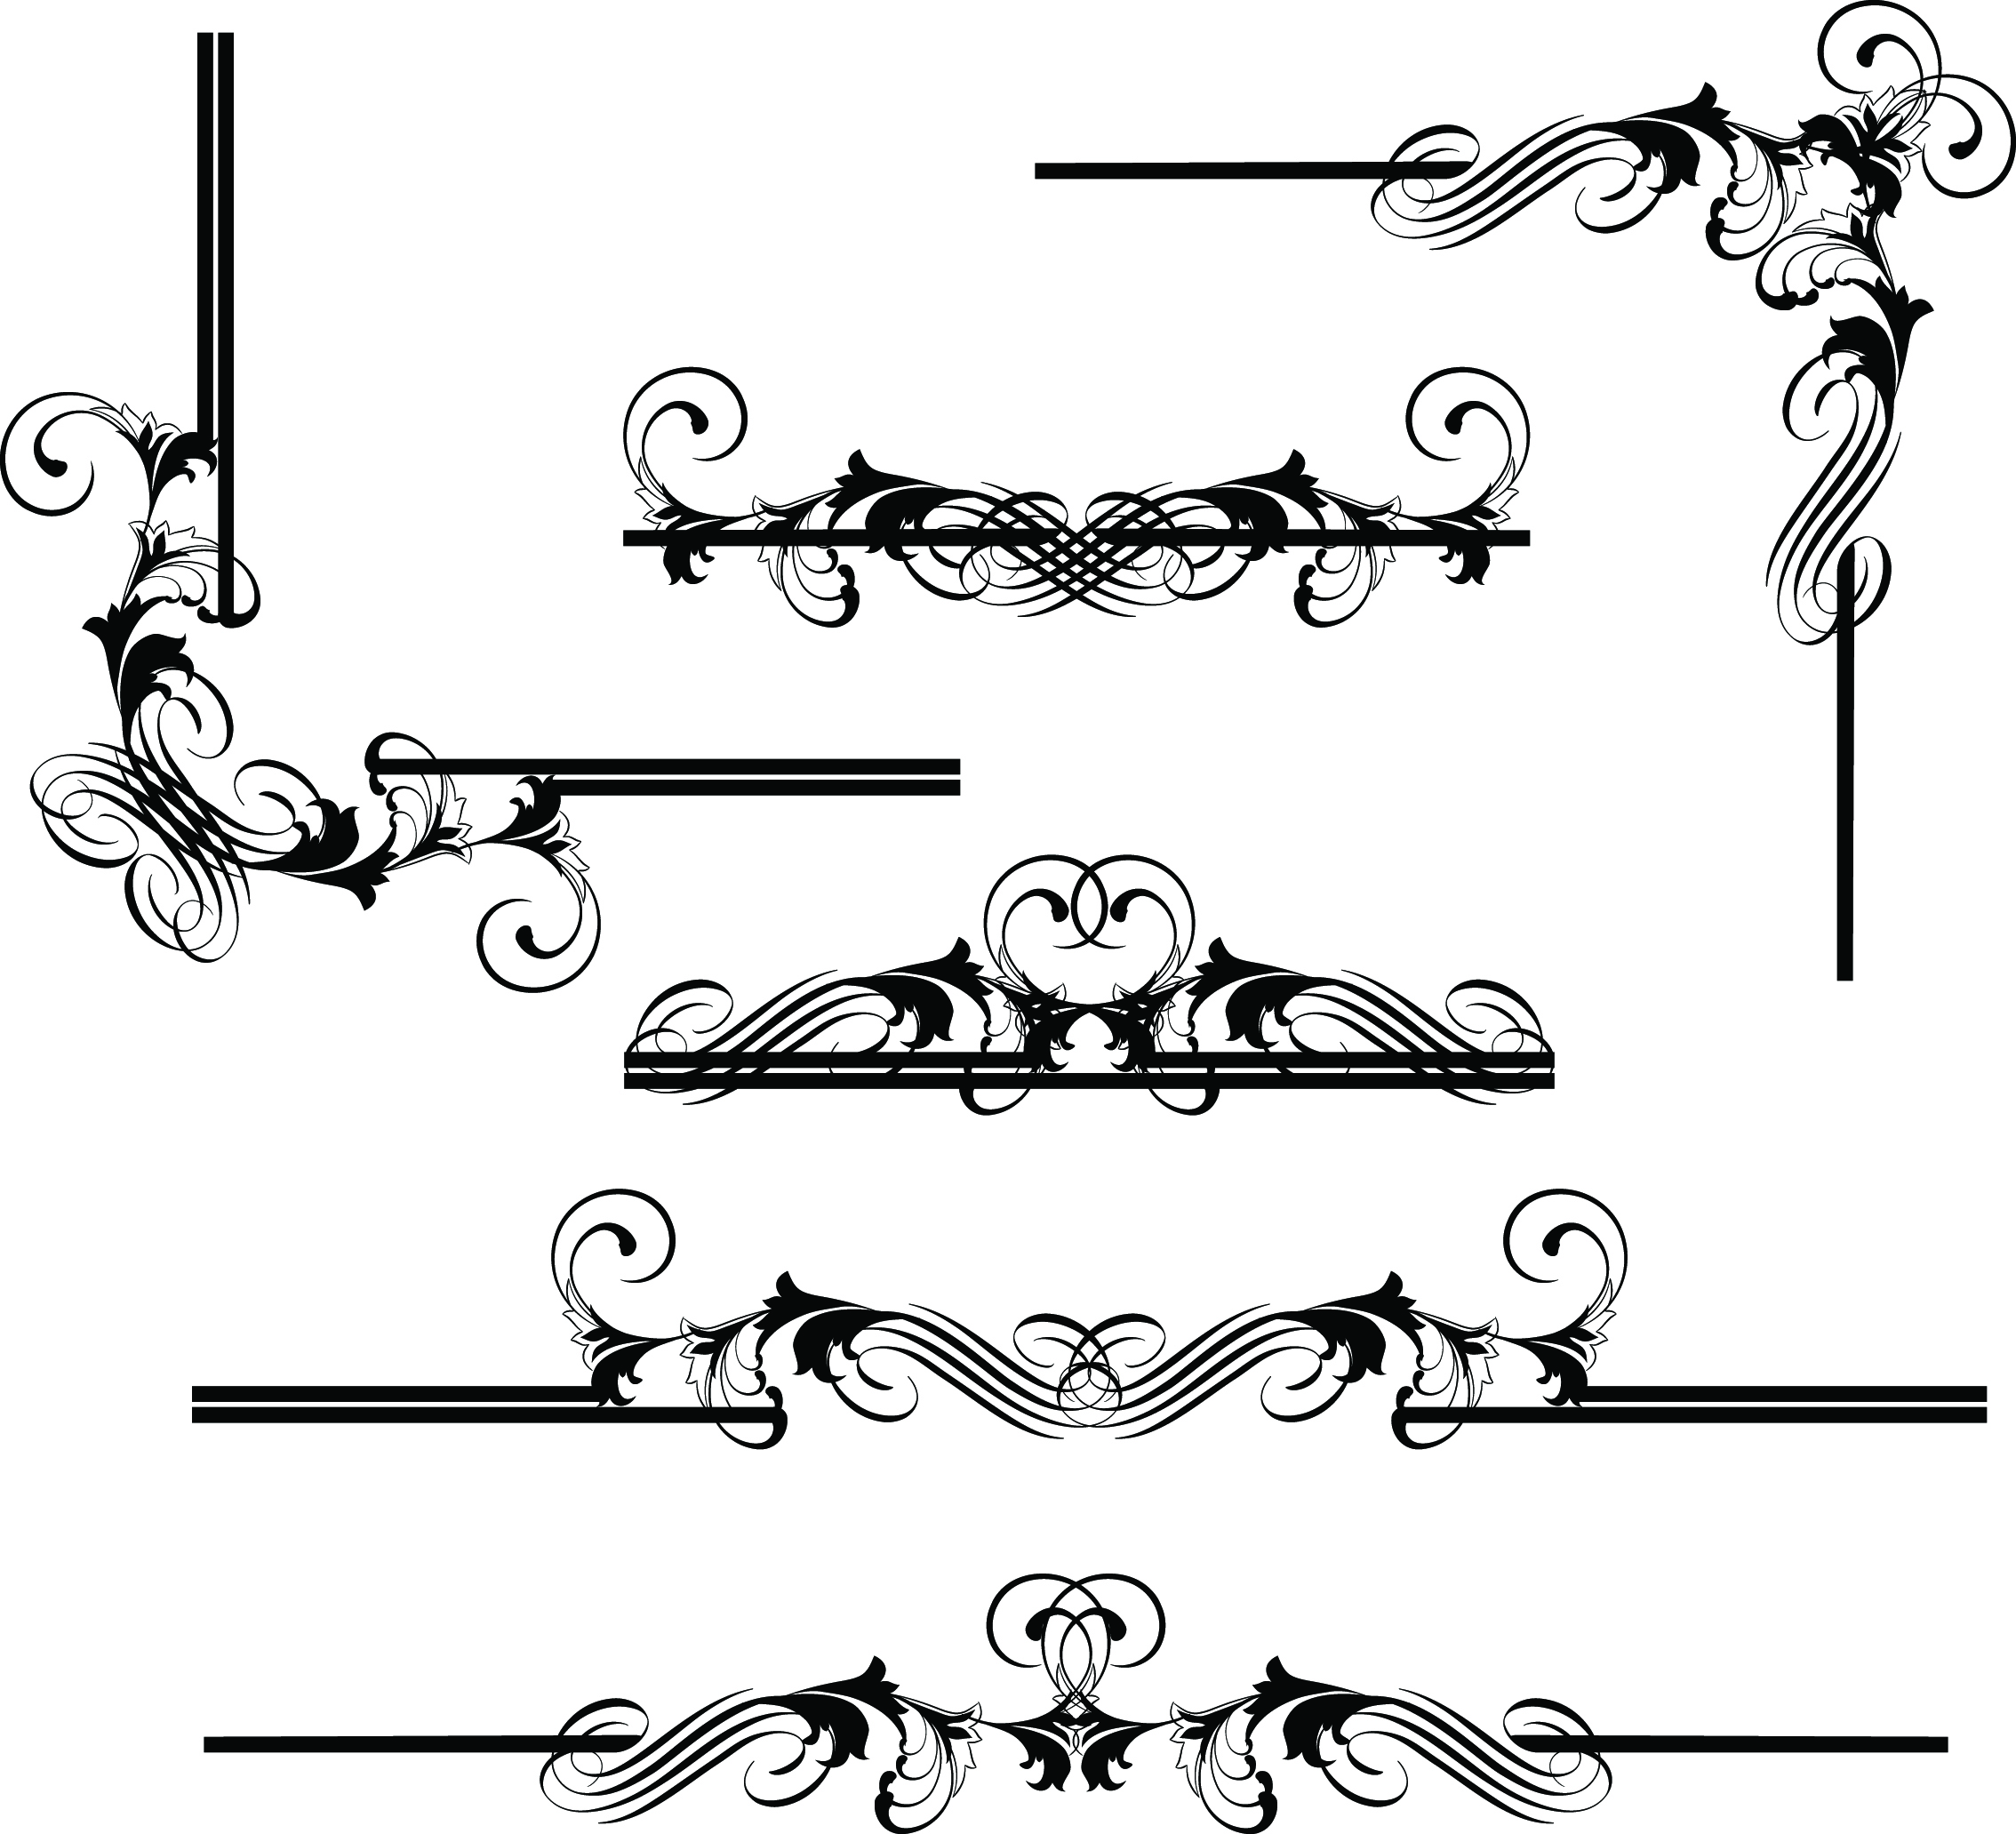 Line Art Border : Border line design free download cliparts